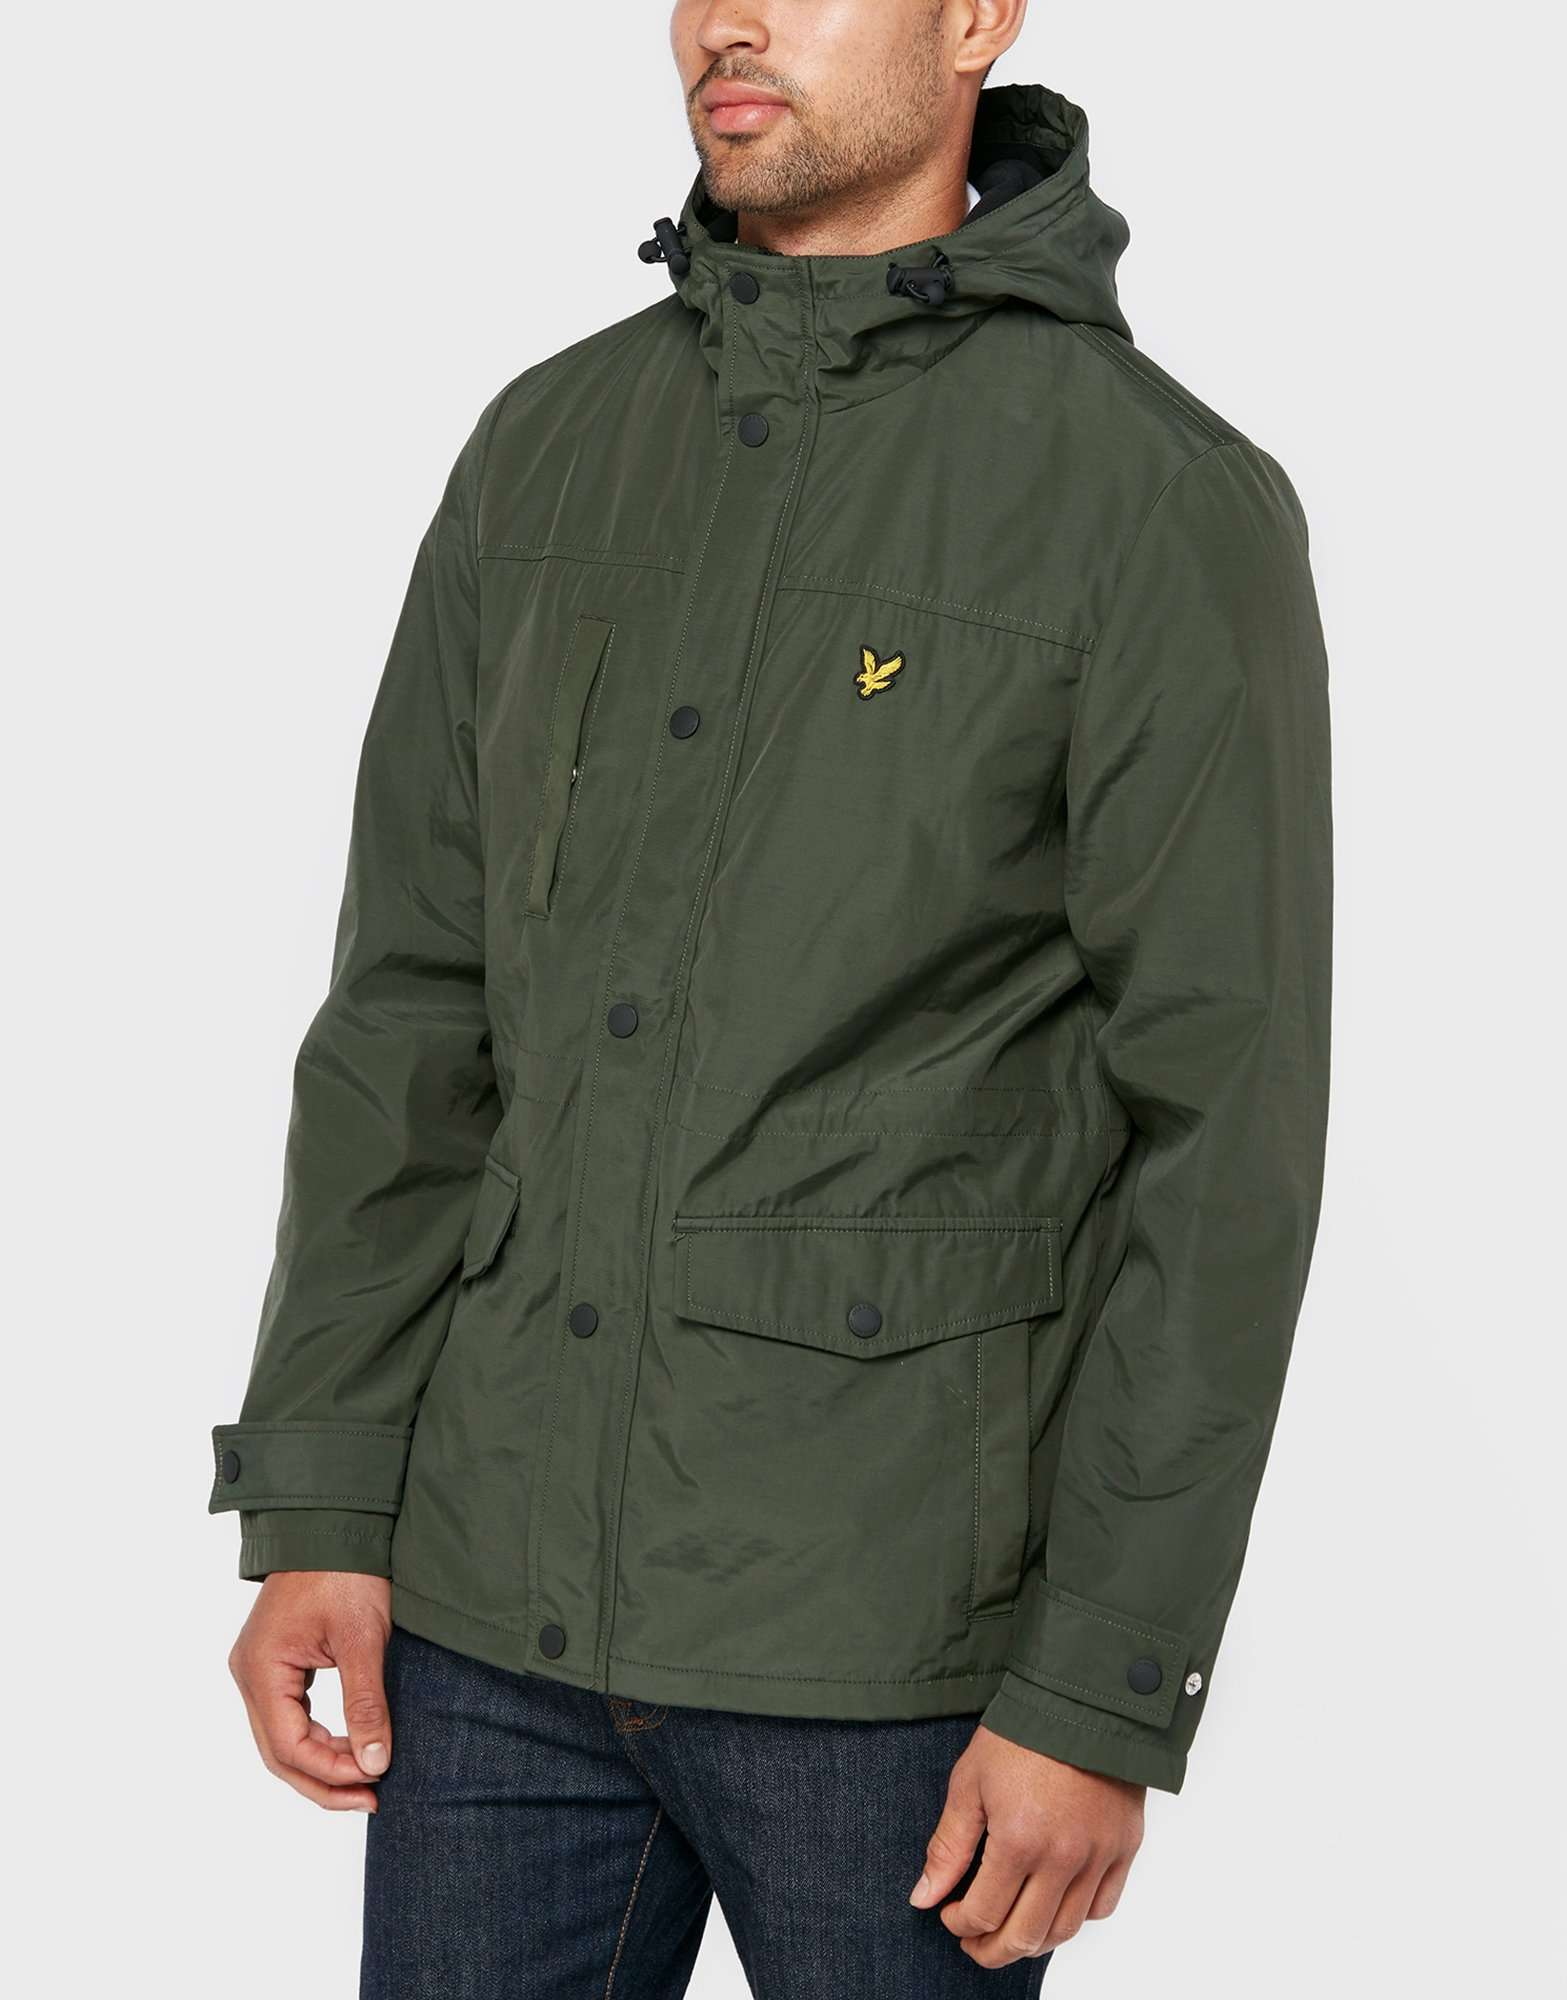 lyle scott fleece line lightweight jacket scotts menswear. Black Bedroom Furniture Sets. Home Design Ideas